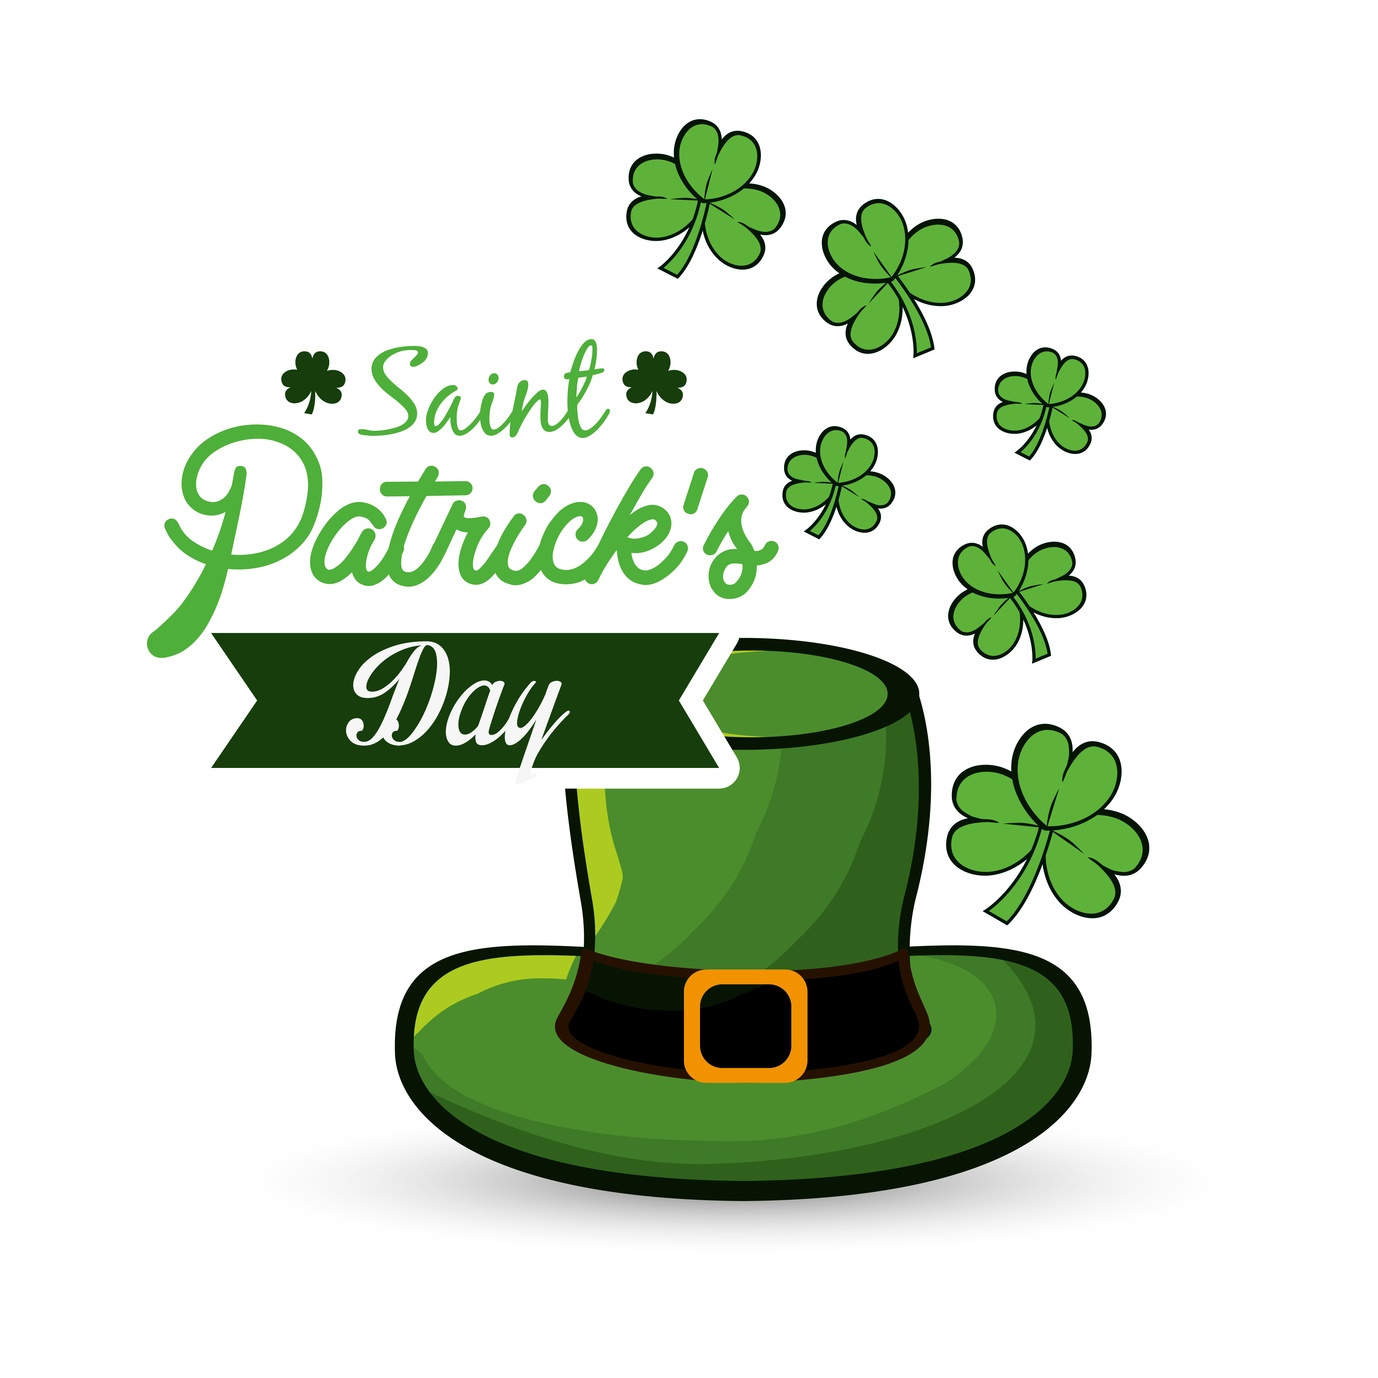 patrick's day icon image